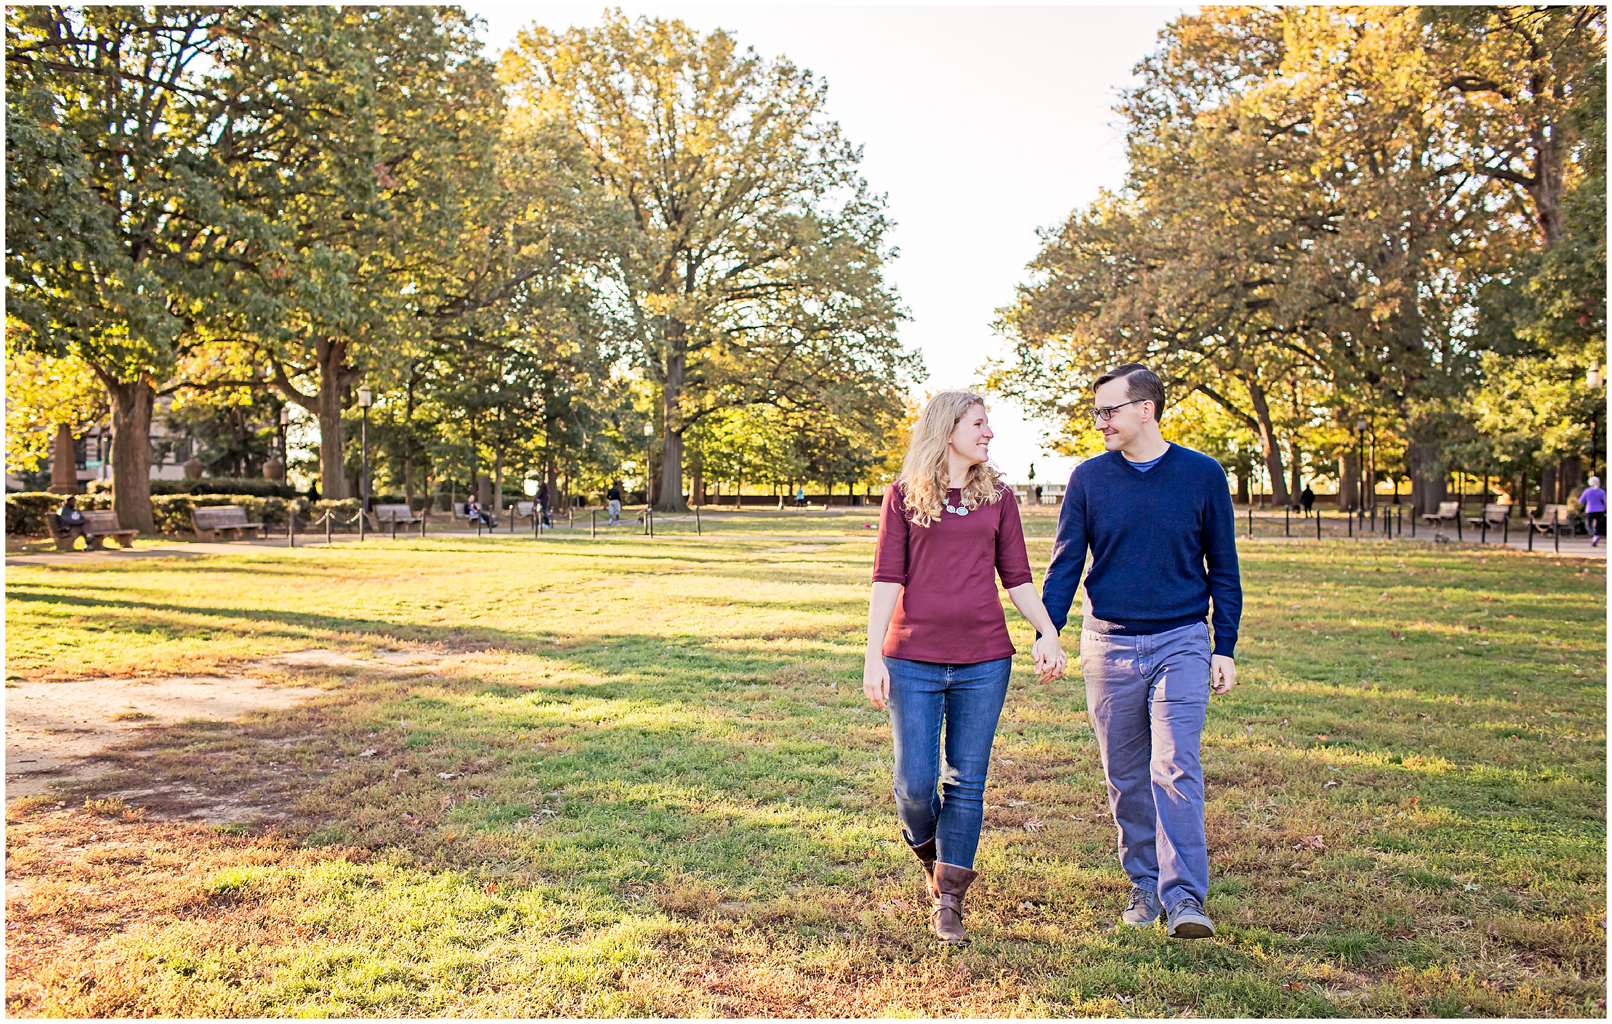 h-street-meridian-hill-washington-dc-engagement-photography-liz-stewart-photo-00007